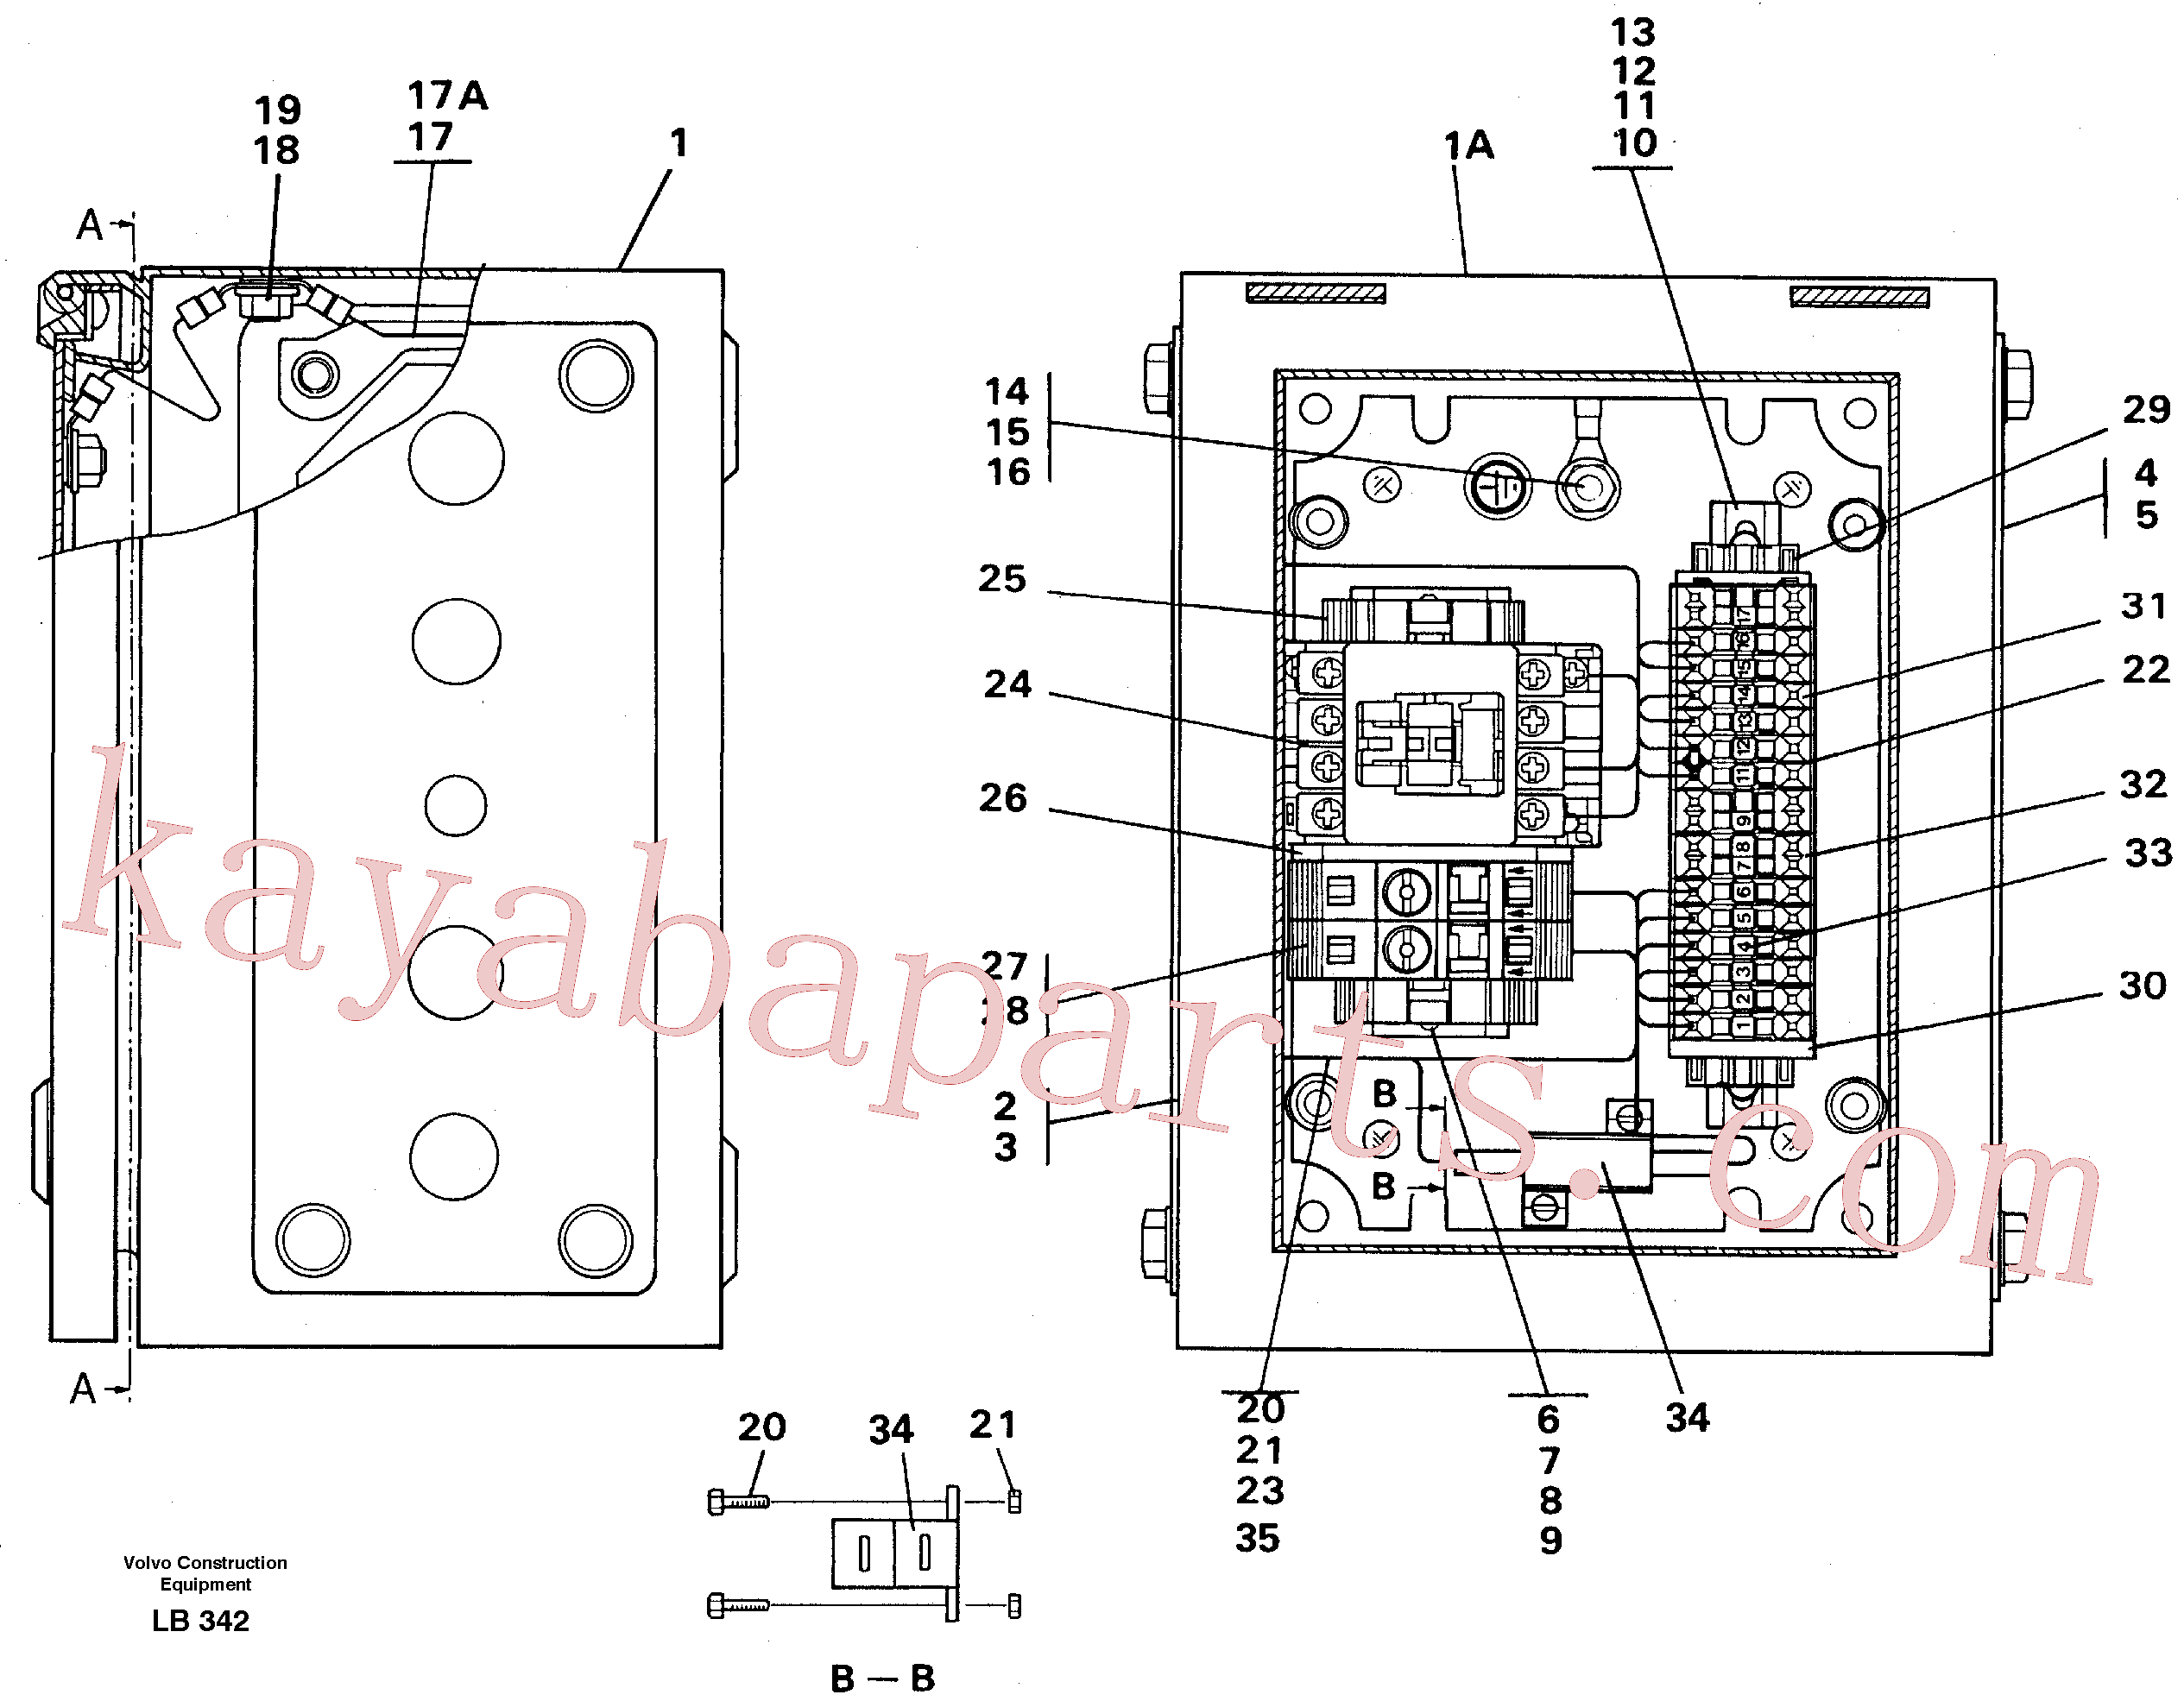 VOE14213801 for Volvo Magnet equipment Ohio, Electrical distribution unit(LB342 assembly)